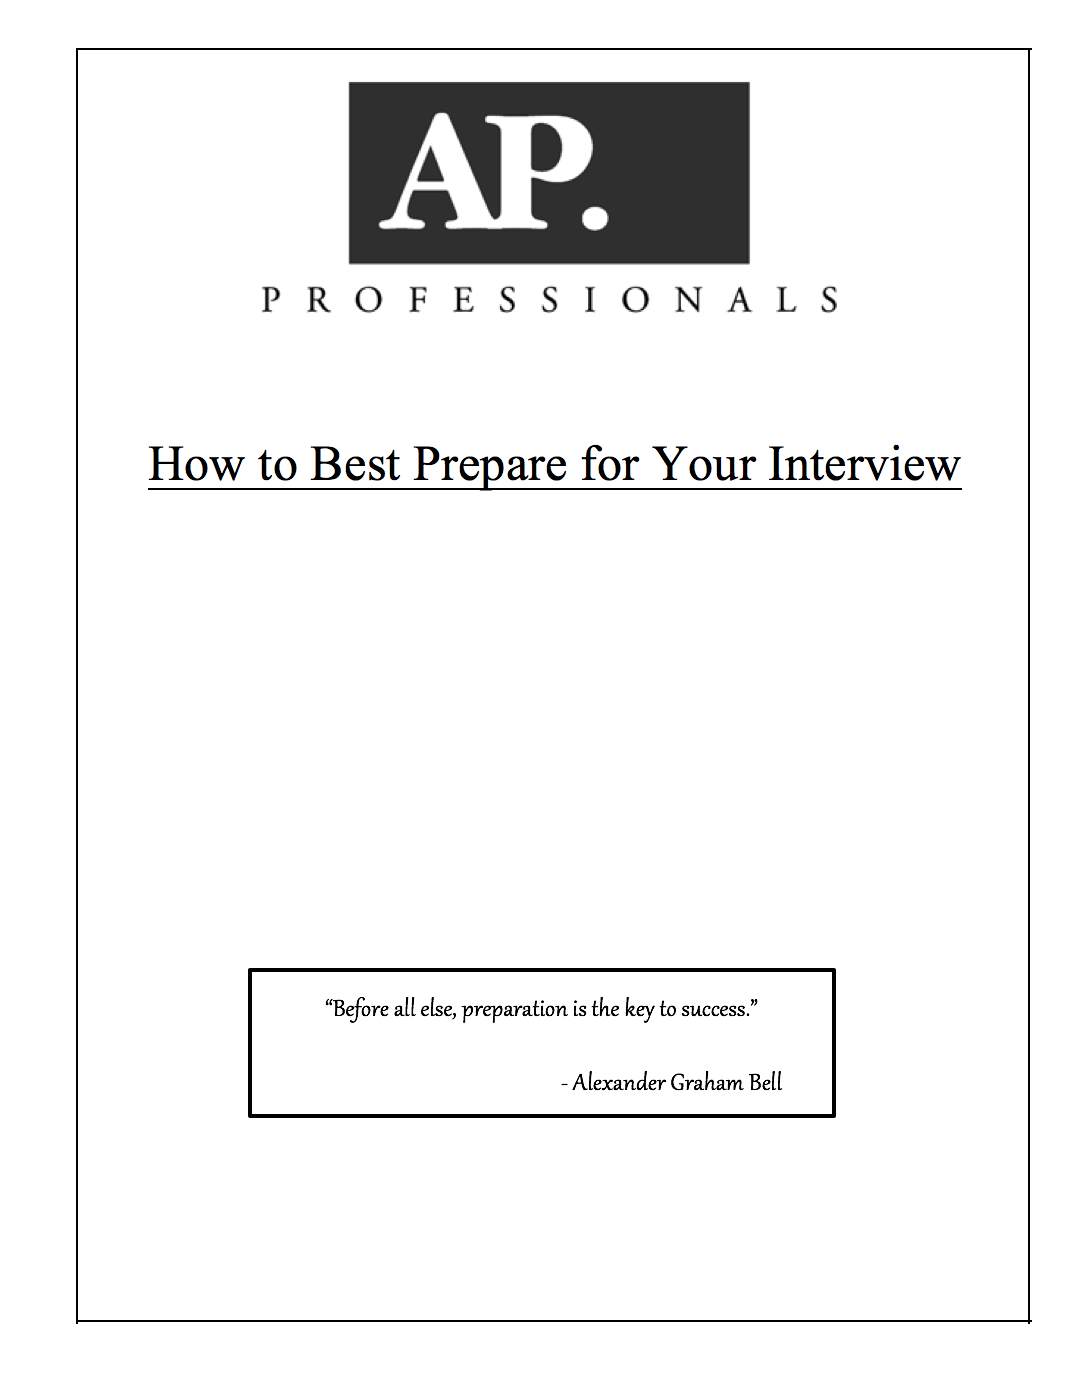 our guide to preparing for your interview ap professionals buffalo screen shot 2015 10 09 at 9 43 59 am